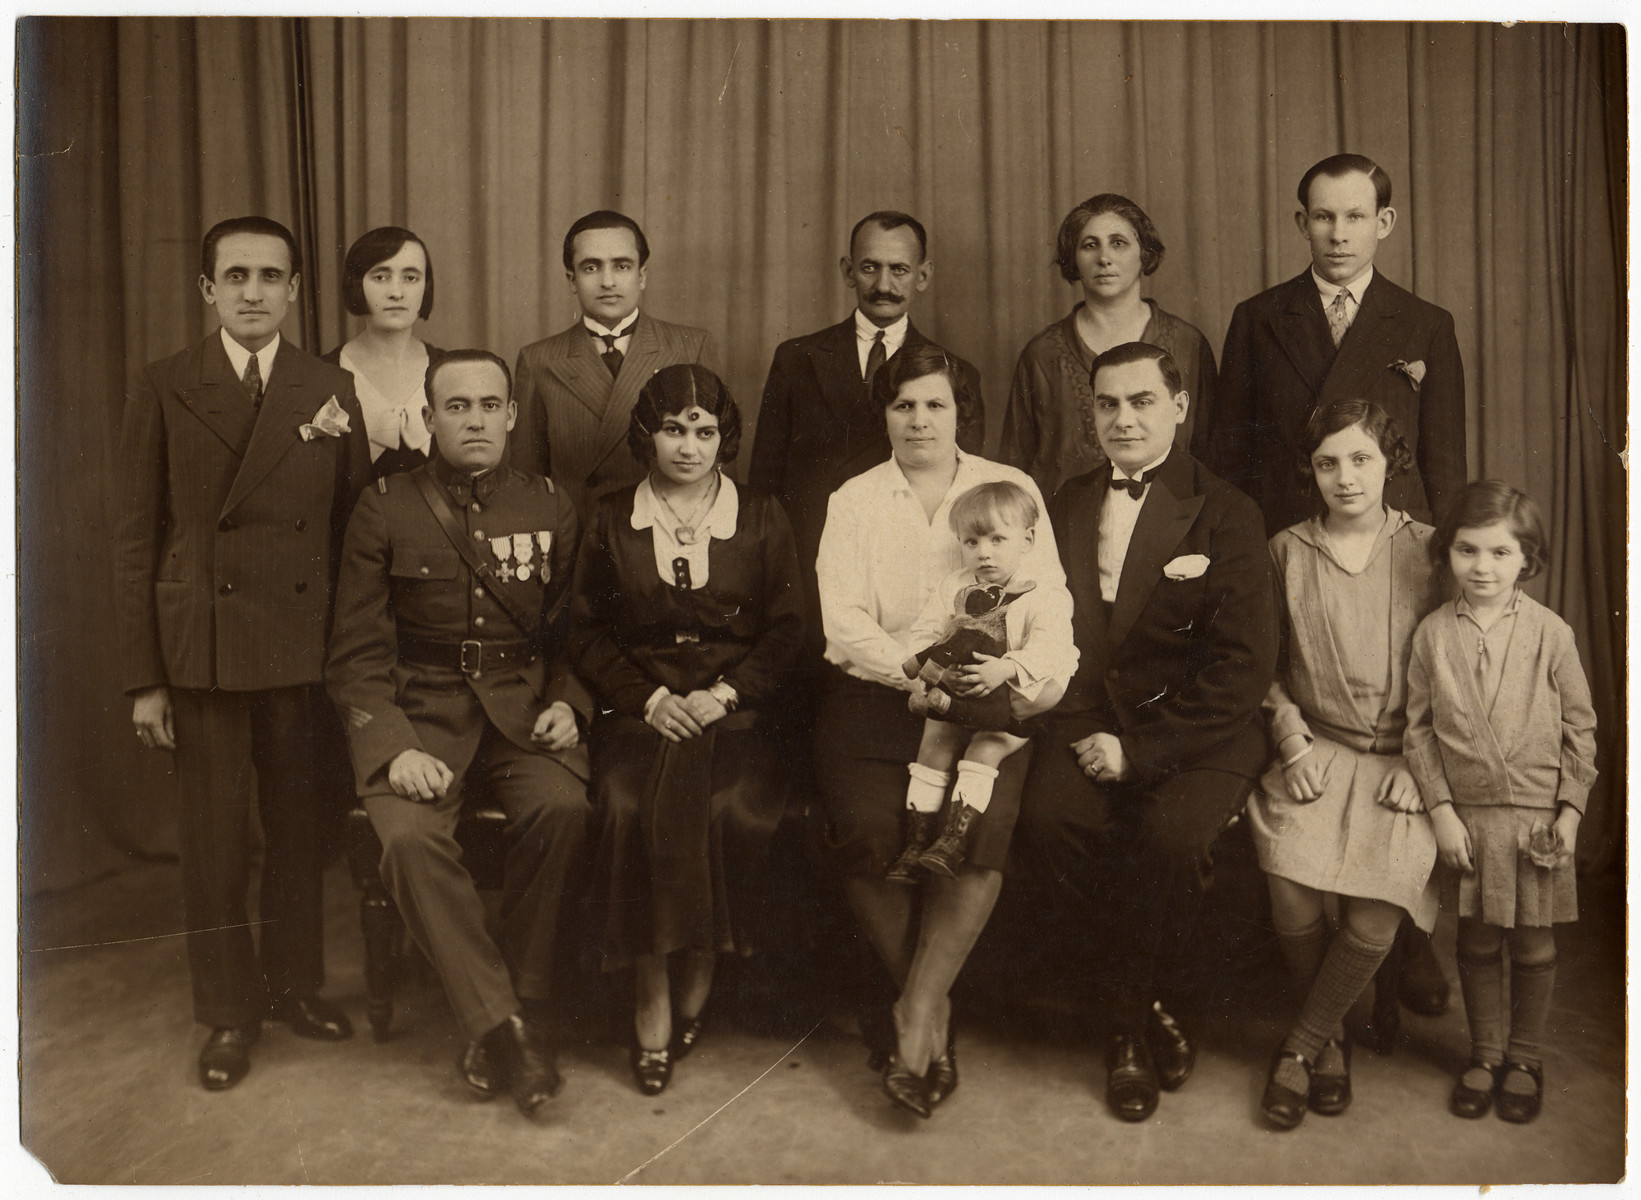 Prewar family photograph of the Roiter family.    Philip Roiter is standing third from the left.  His uncle is next to him.  This is one photograph from the album of Rosalia Dratler Roiter.  She later was deported to and perished at Auschwitz.